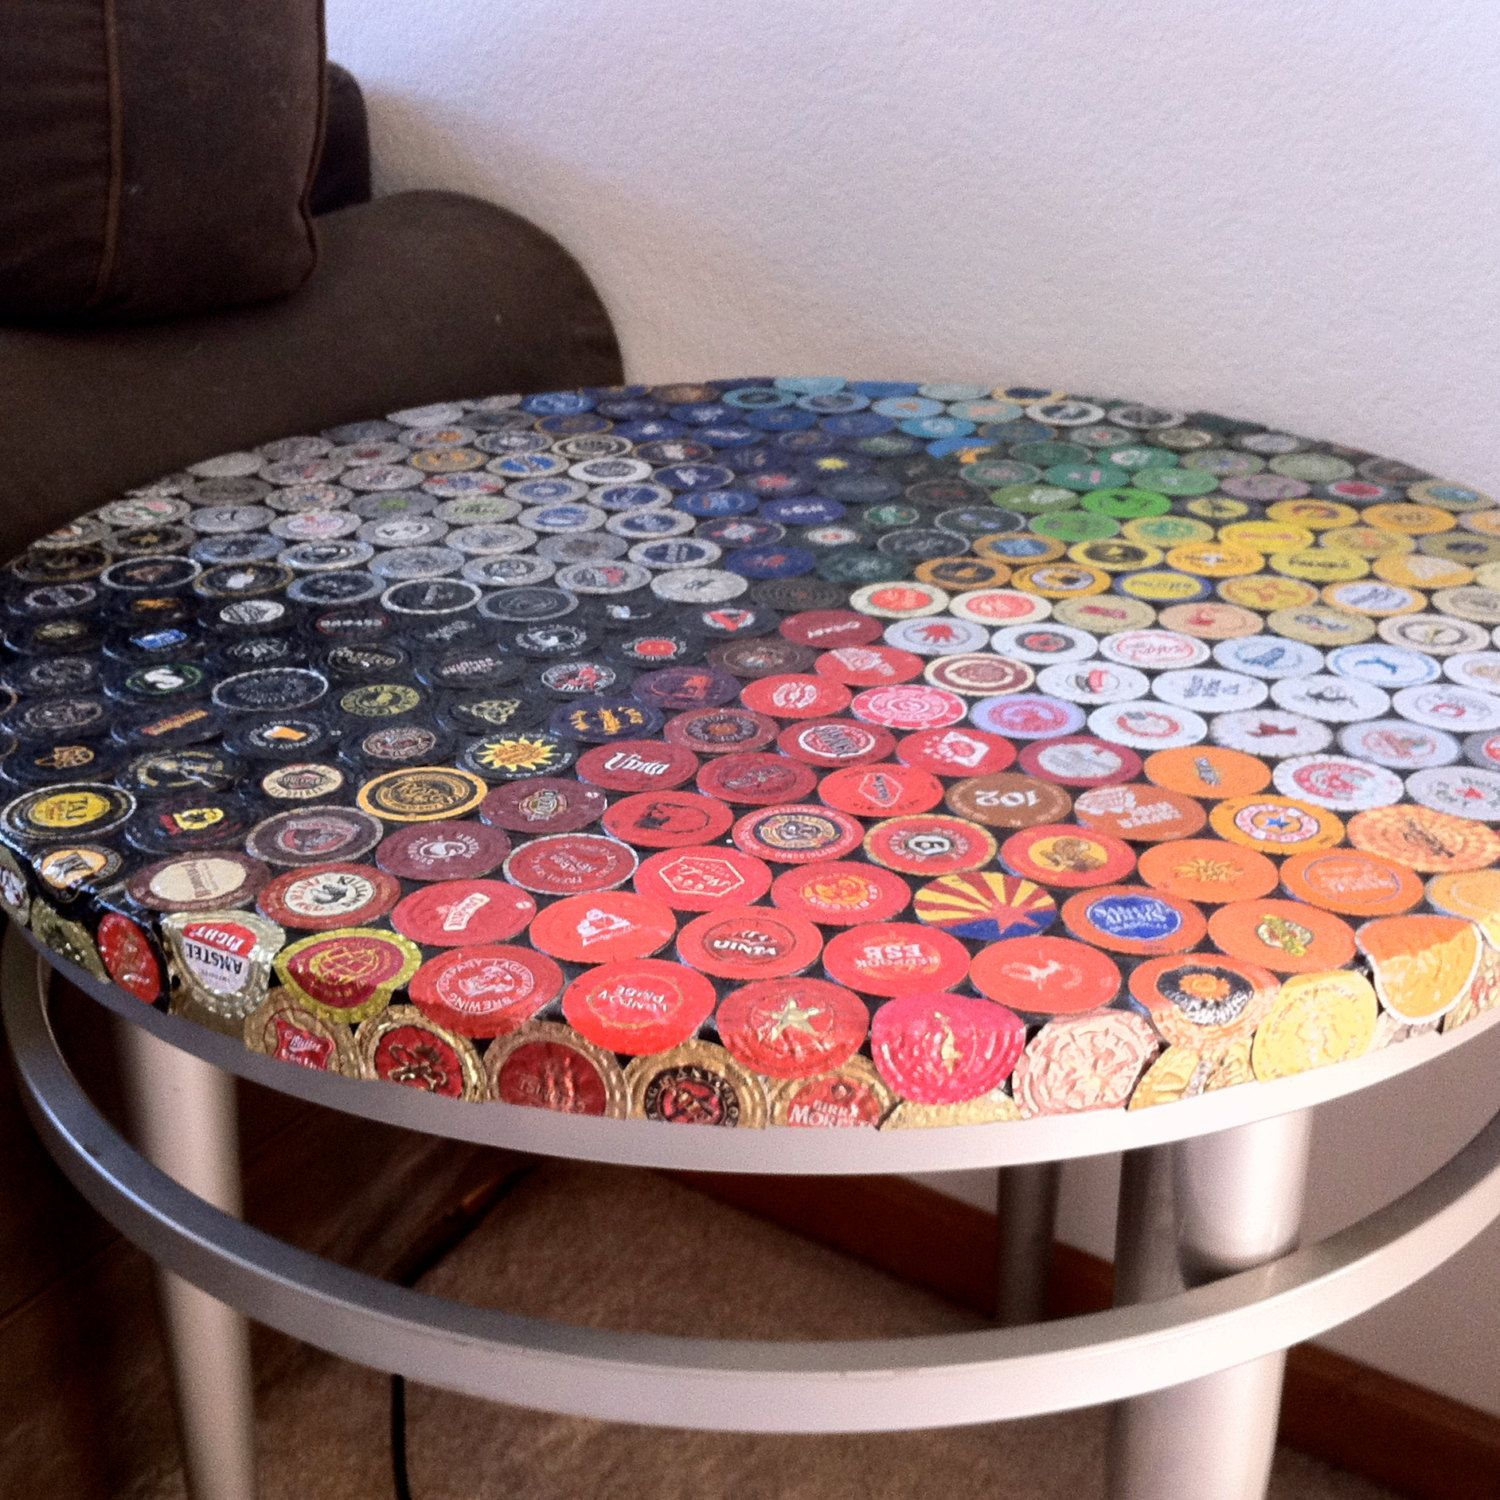 Beer Bottle Cap Mosaic Table maybe do that instead for a bar